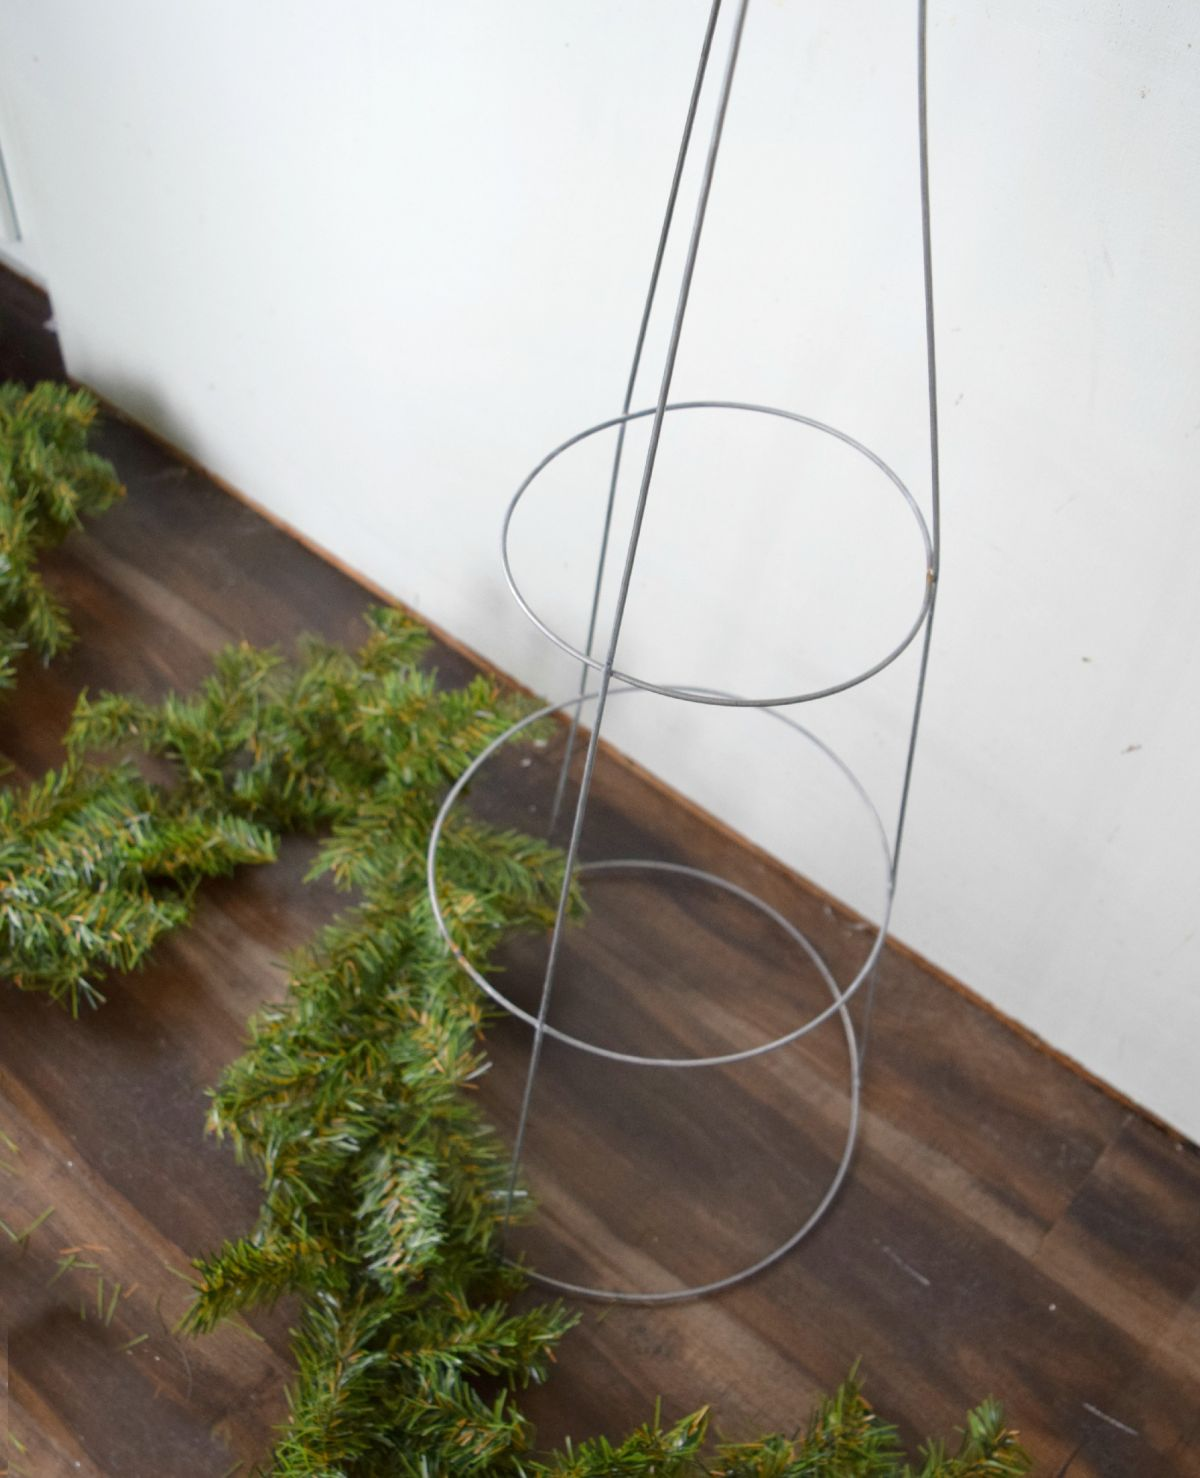 Winding garland around cage